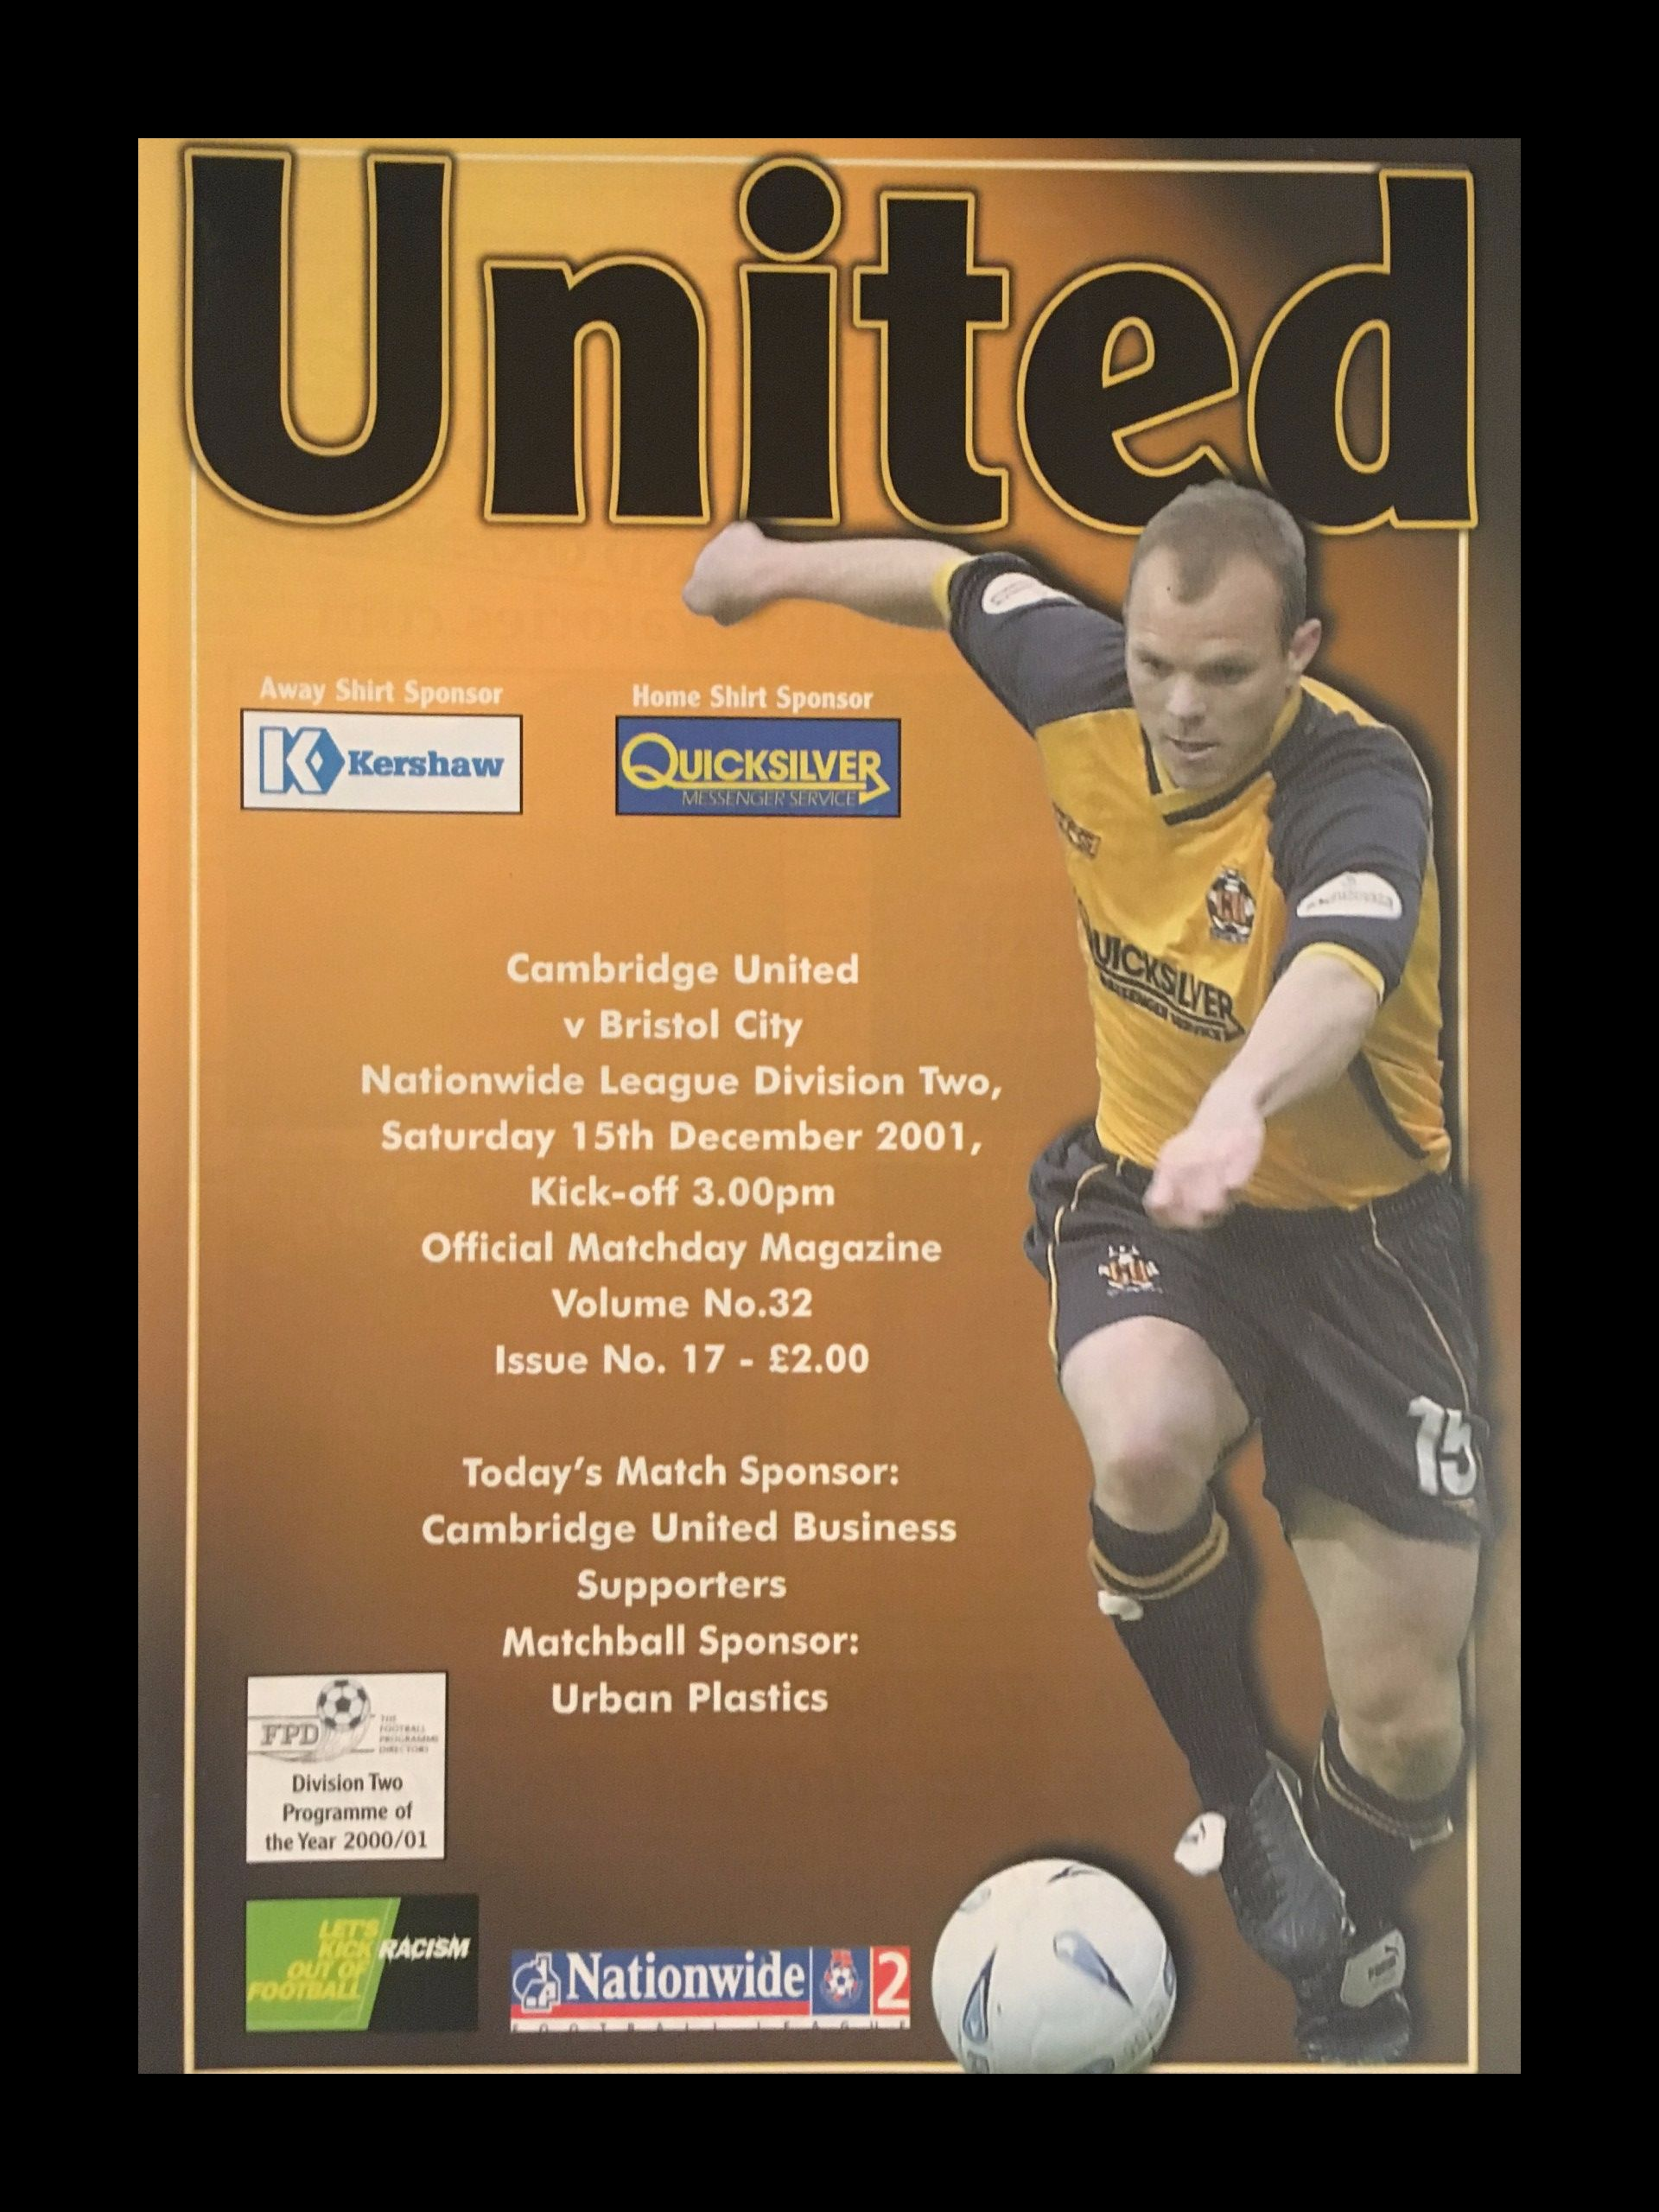 Cambridge United v Bristol City 29-09-2001 Programme